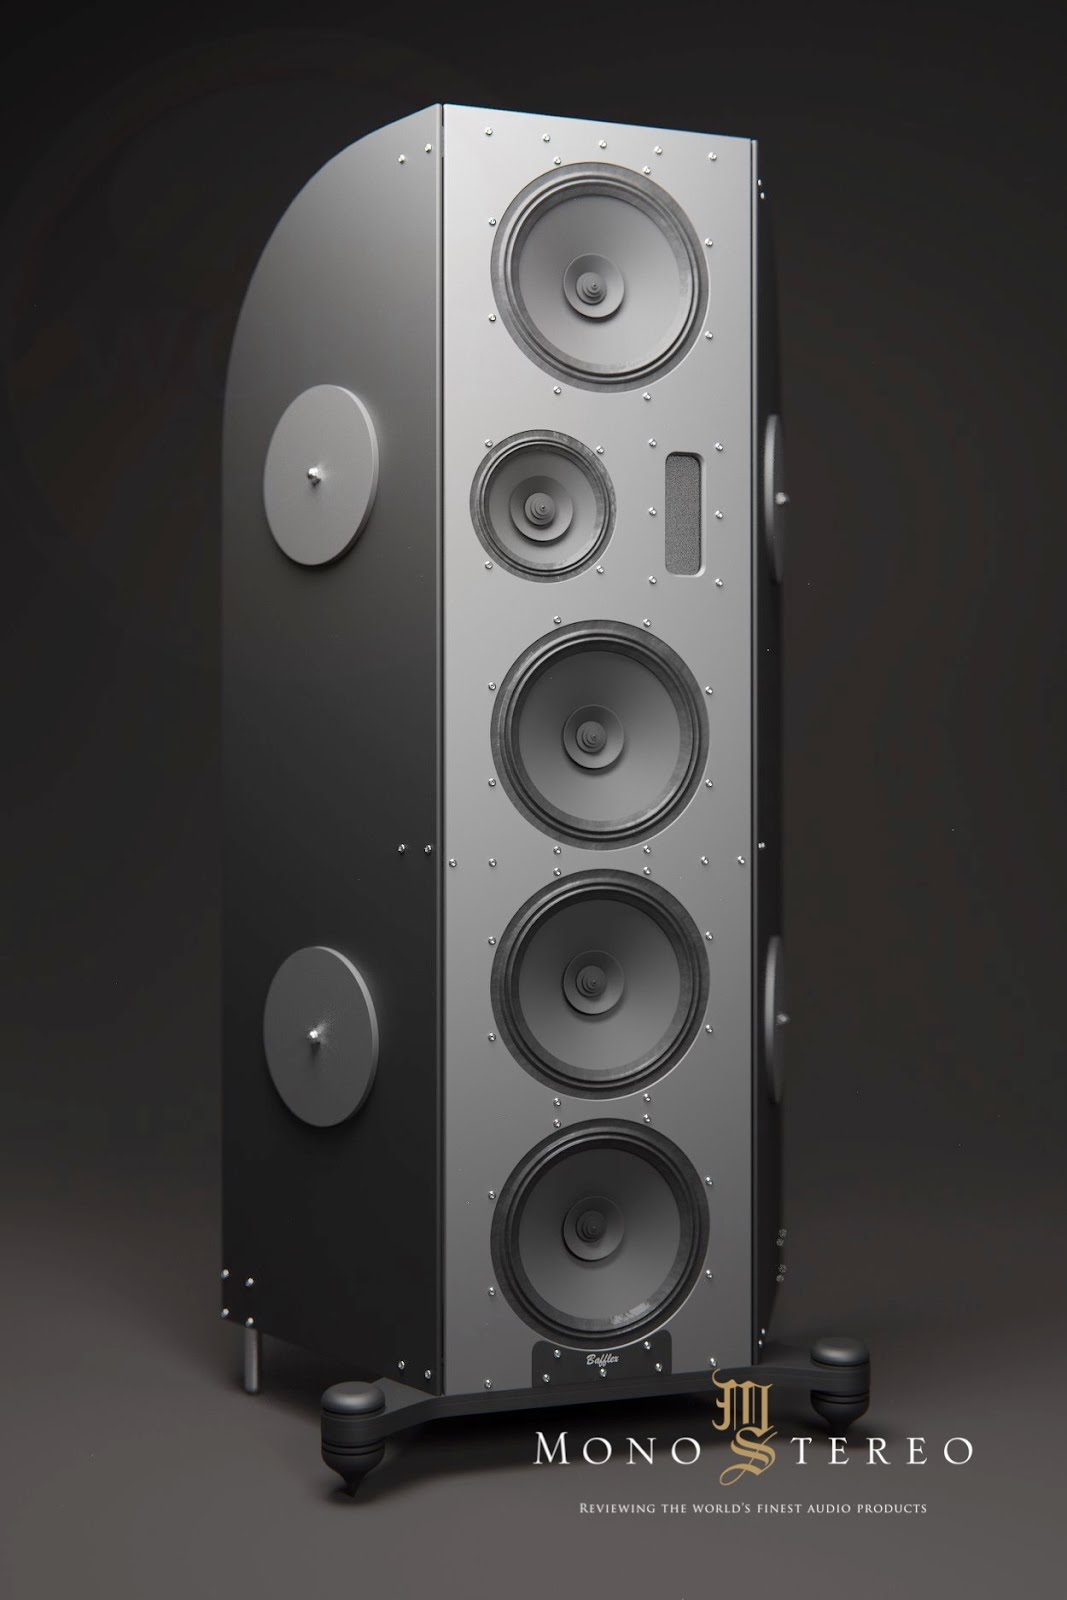 mono and stereo high end audio magazine high fidelity cables bafflex speakers. Black Bedroom Furniture Sets. Home Design Ideas